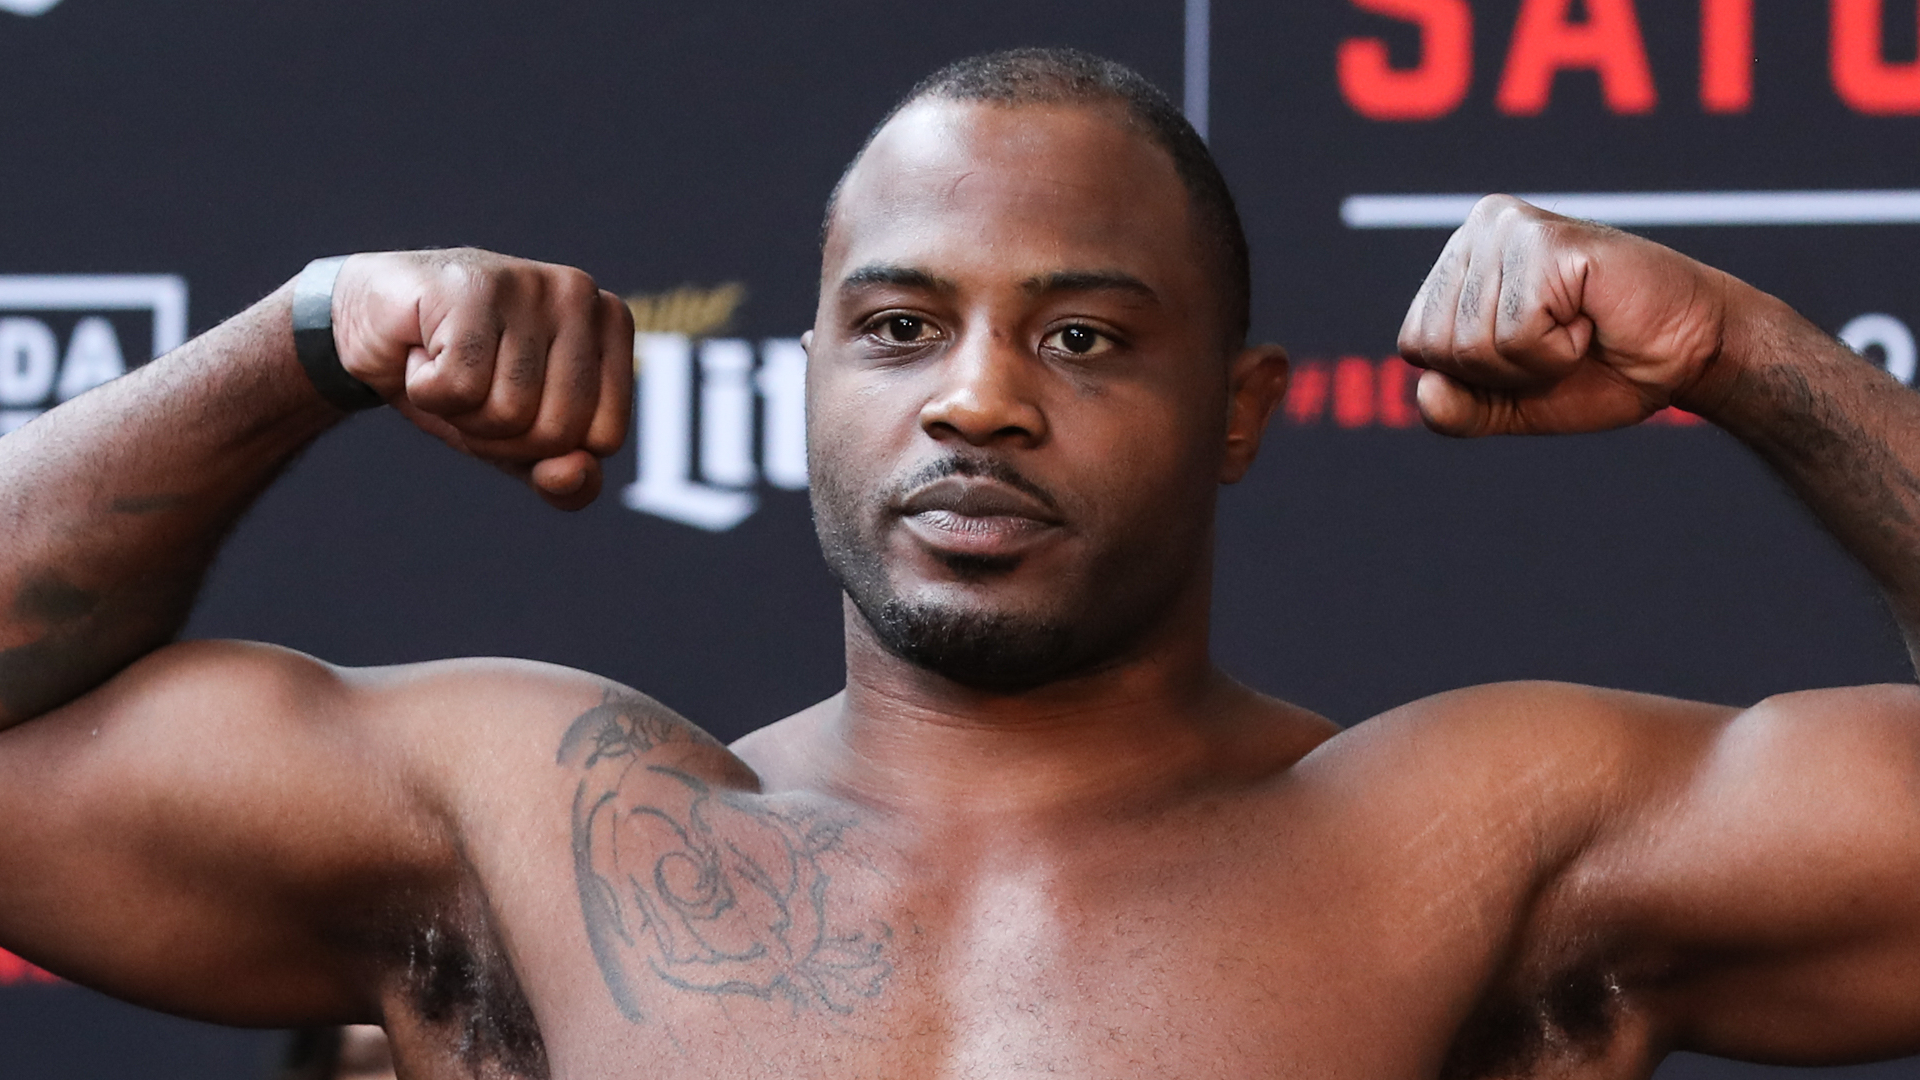 Tyrell Fortune once pronounced dead attempting to cut weight